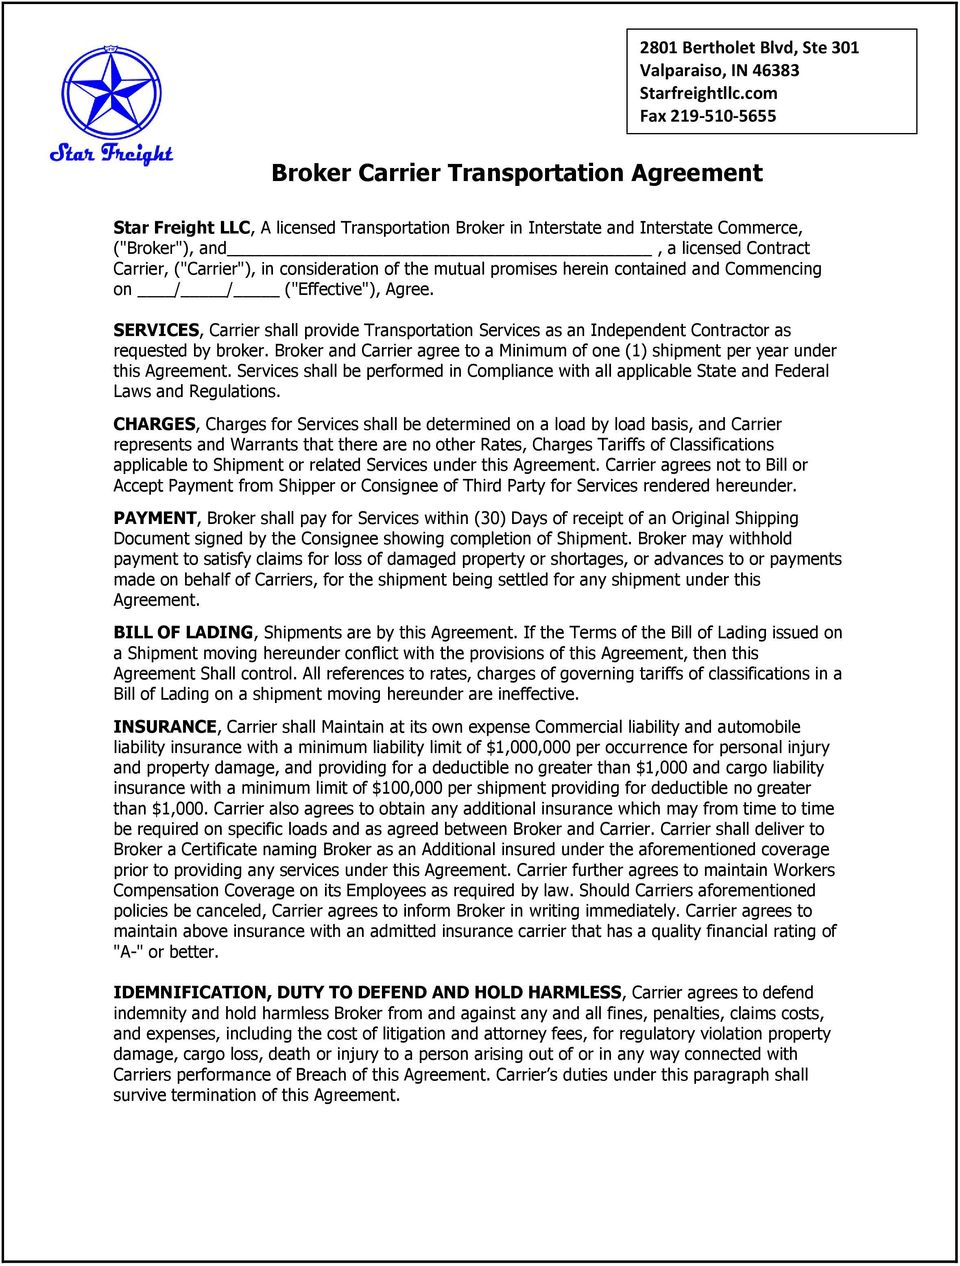 SERVICES, Carrier shall provide Transportation Services as an Independent Contractor as requested by broker. Broker and Carrier agree to a Minimum of one (1) shipment per year under this Agreement.